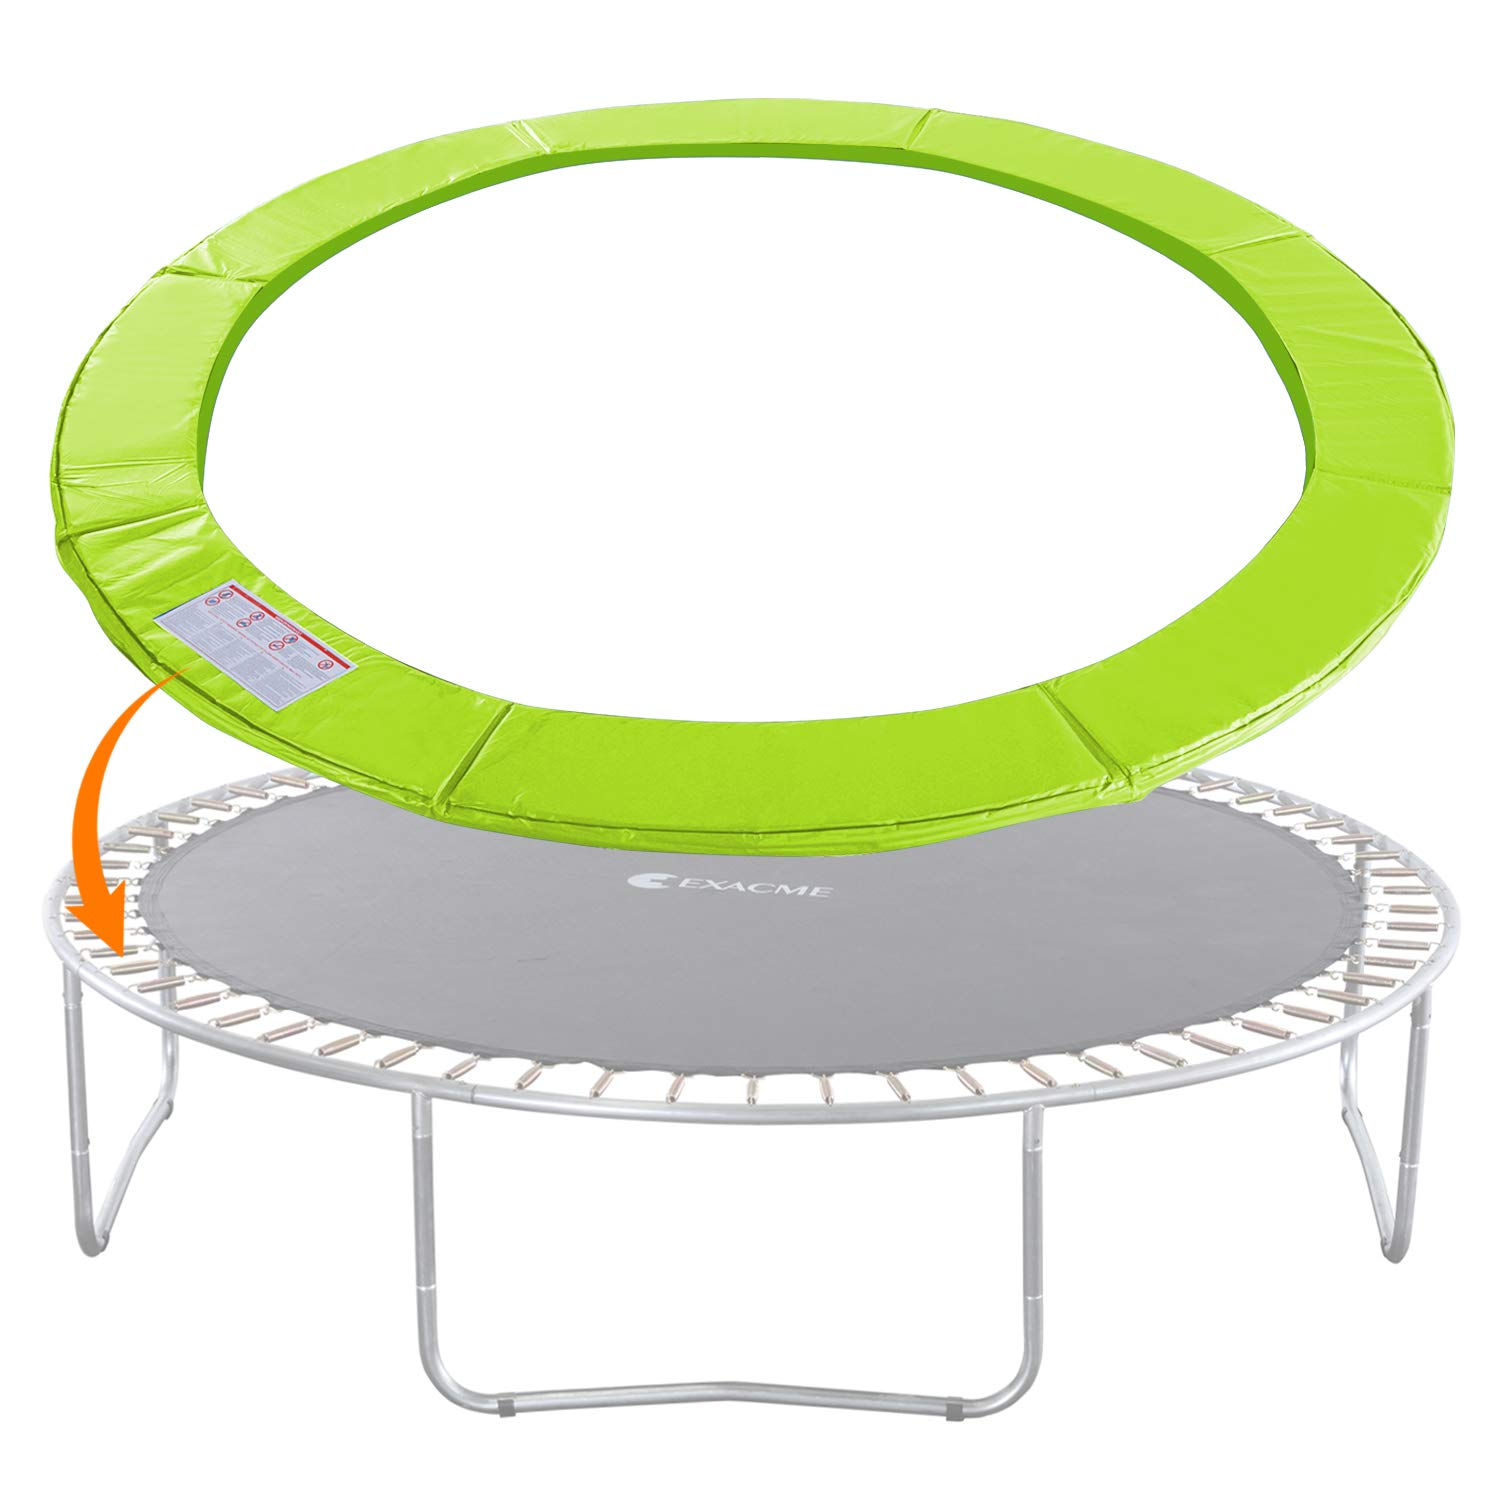 Exacme Trampoline Replacement Safety Pad Round Spring Cover, No Slots (Light Green, 15 Foot) by Exacme